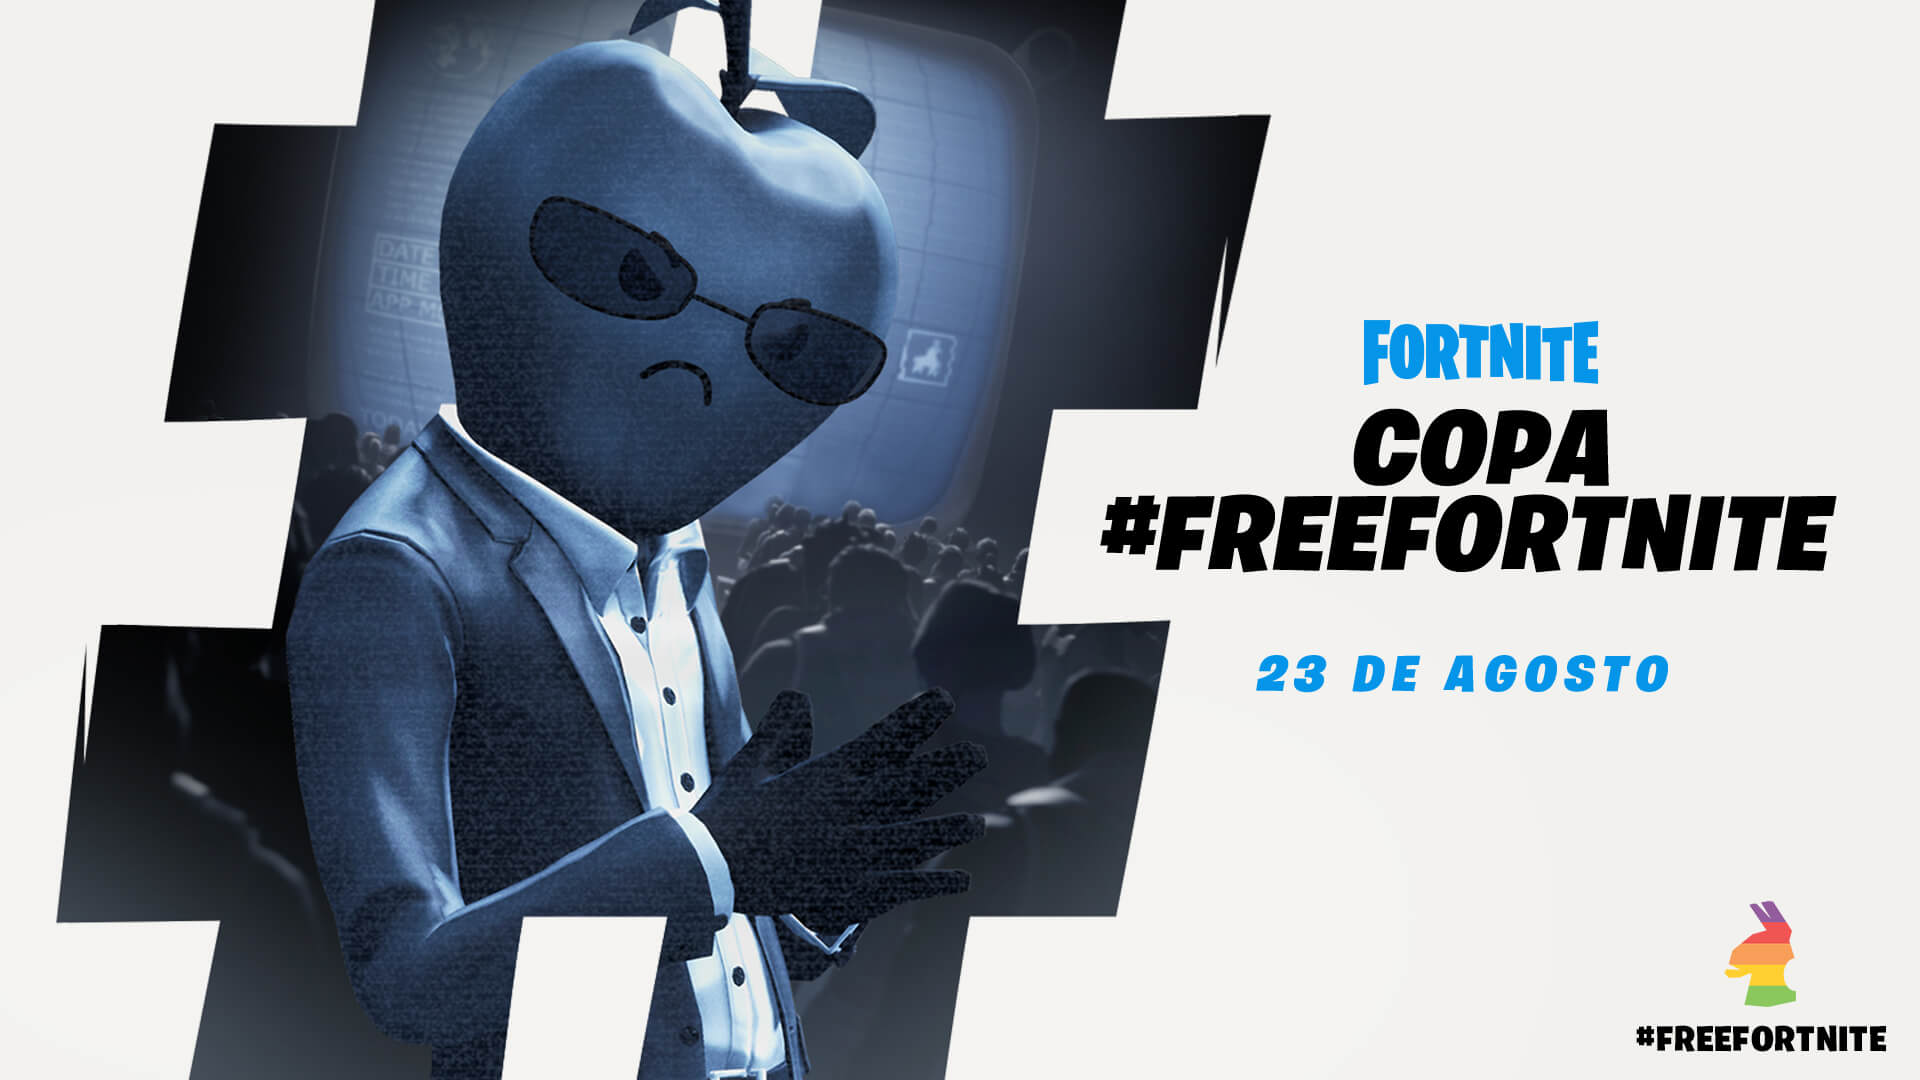 Epic Games desafía a Apple con el torneo #FreeFortniteCup